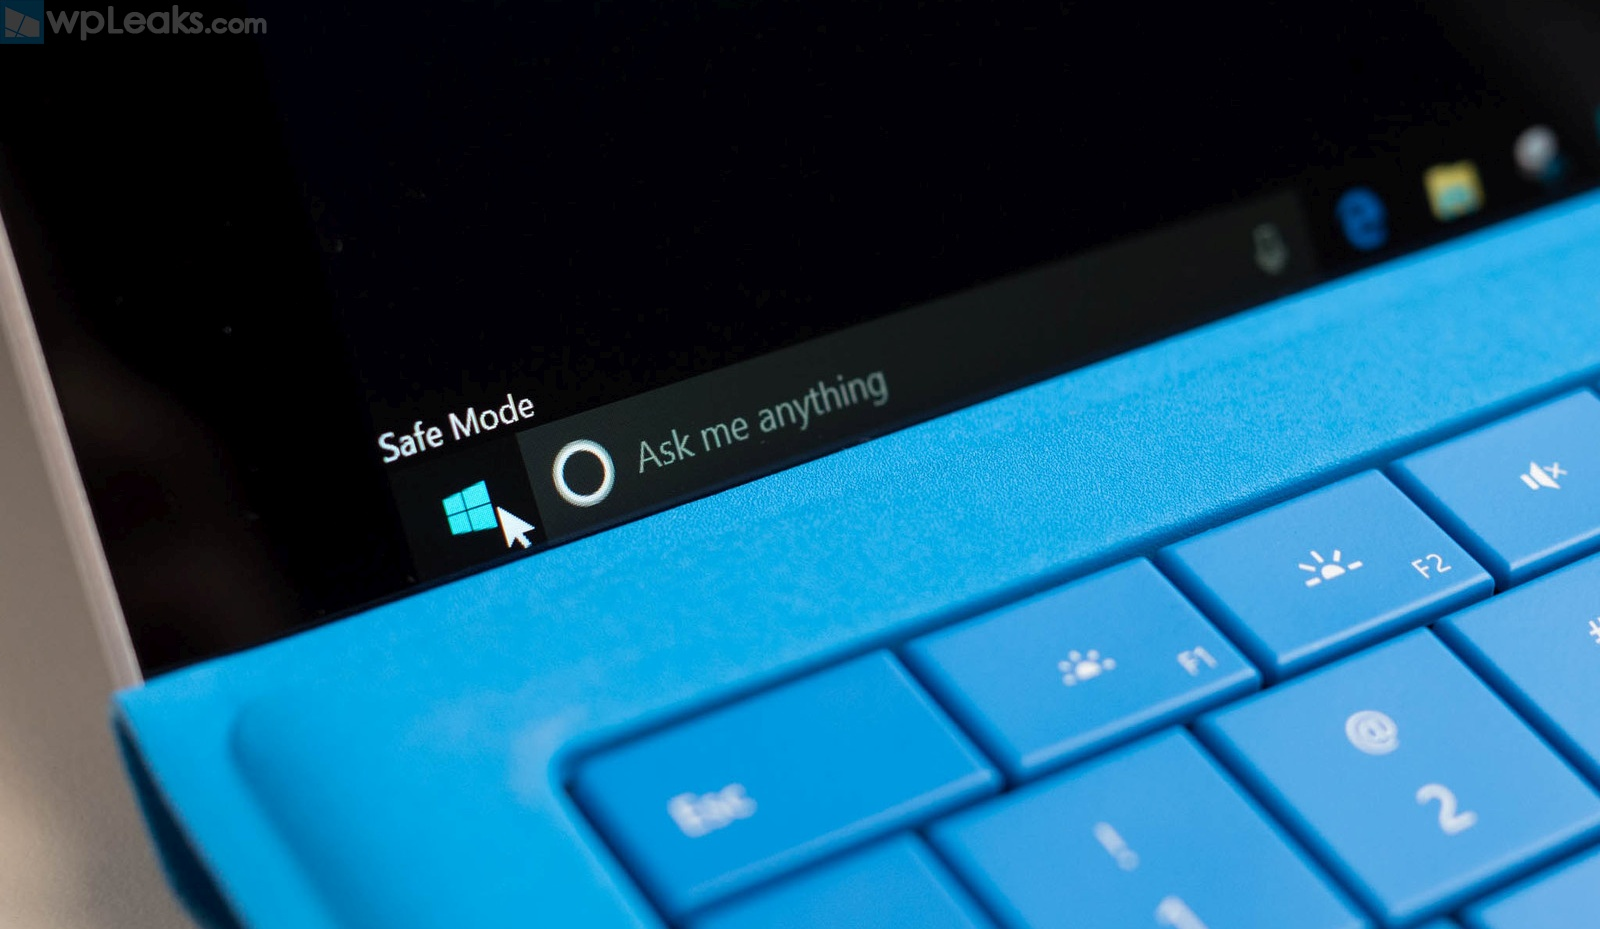 safe-mode-windows-10-surface